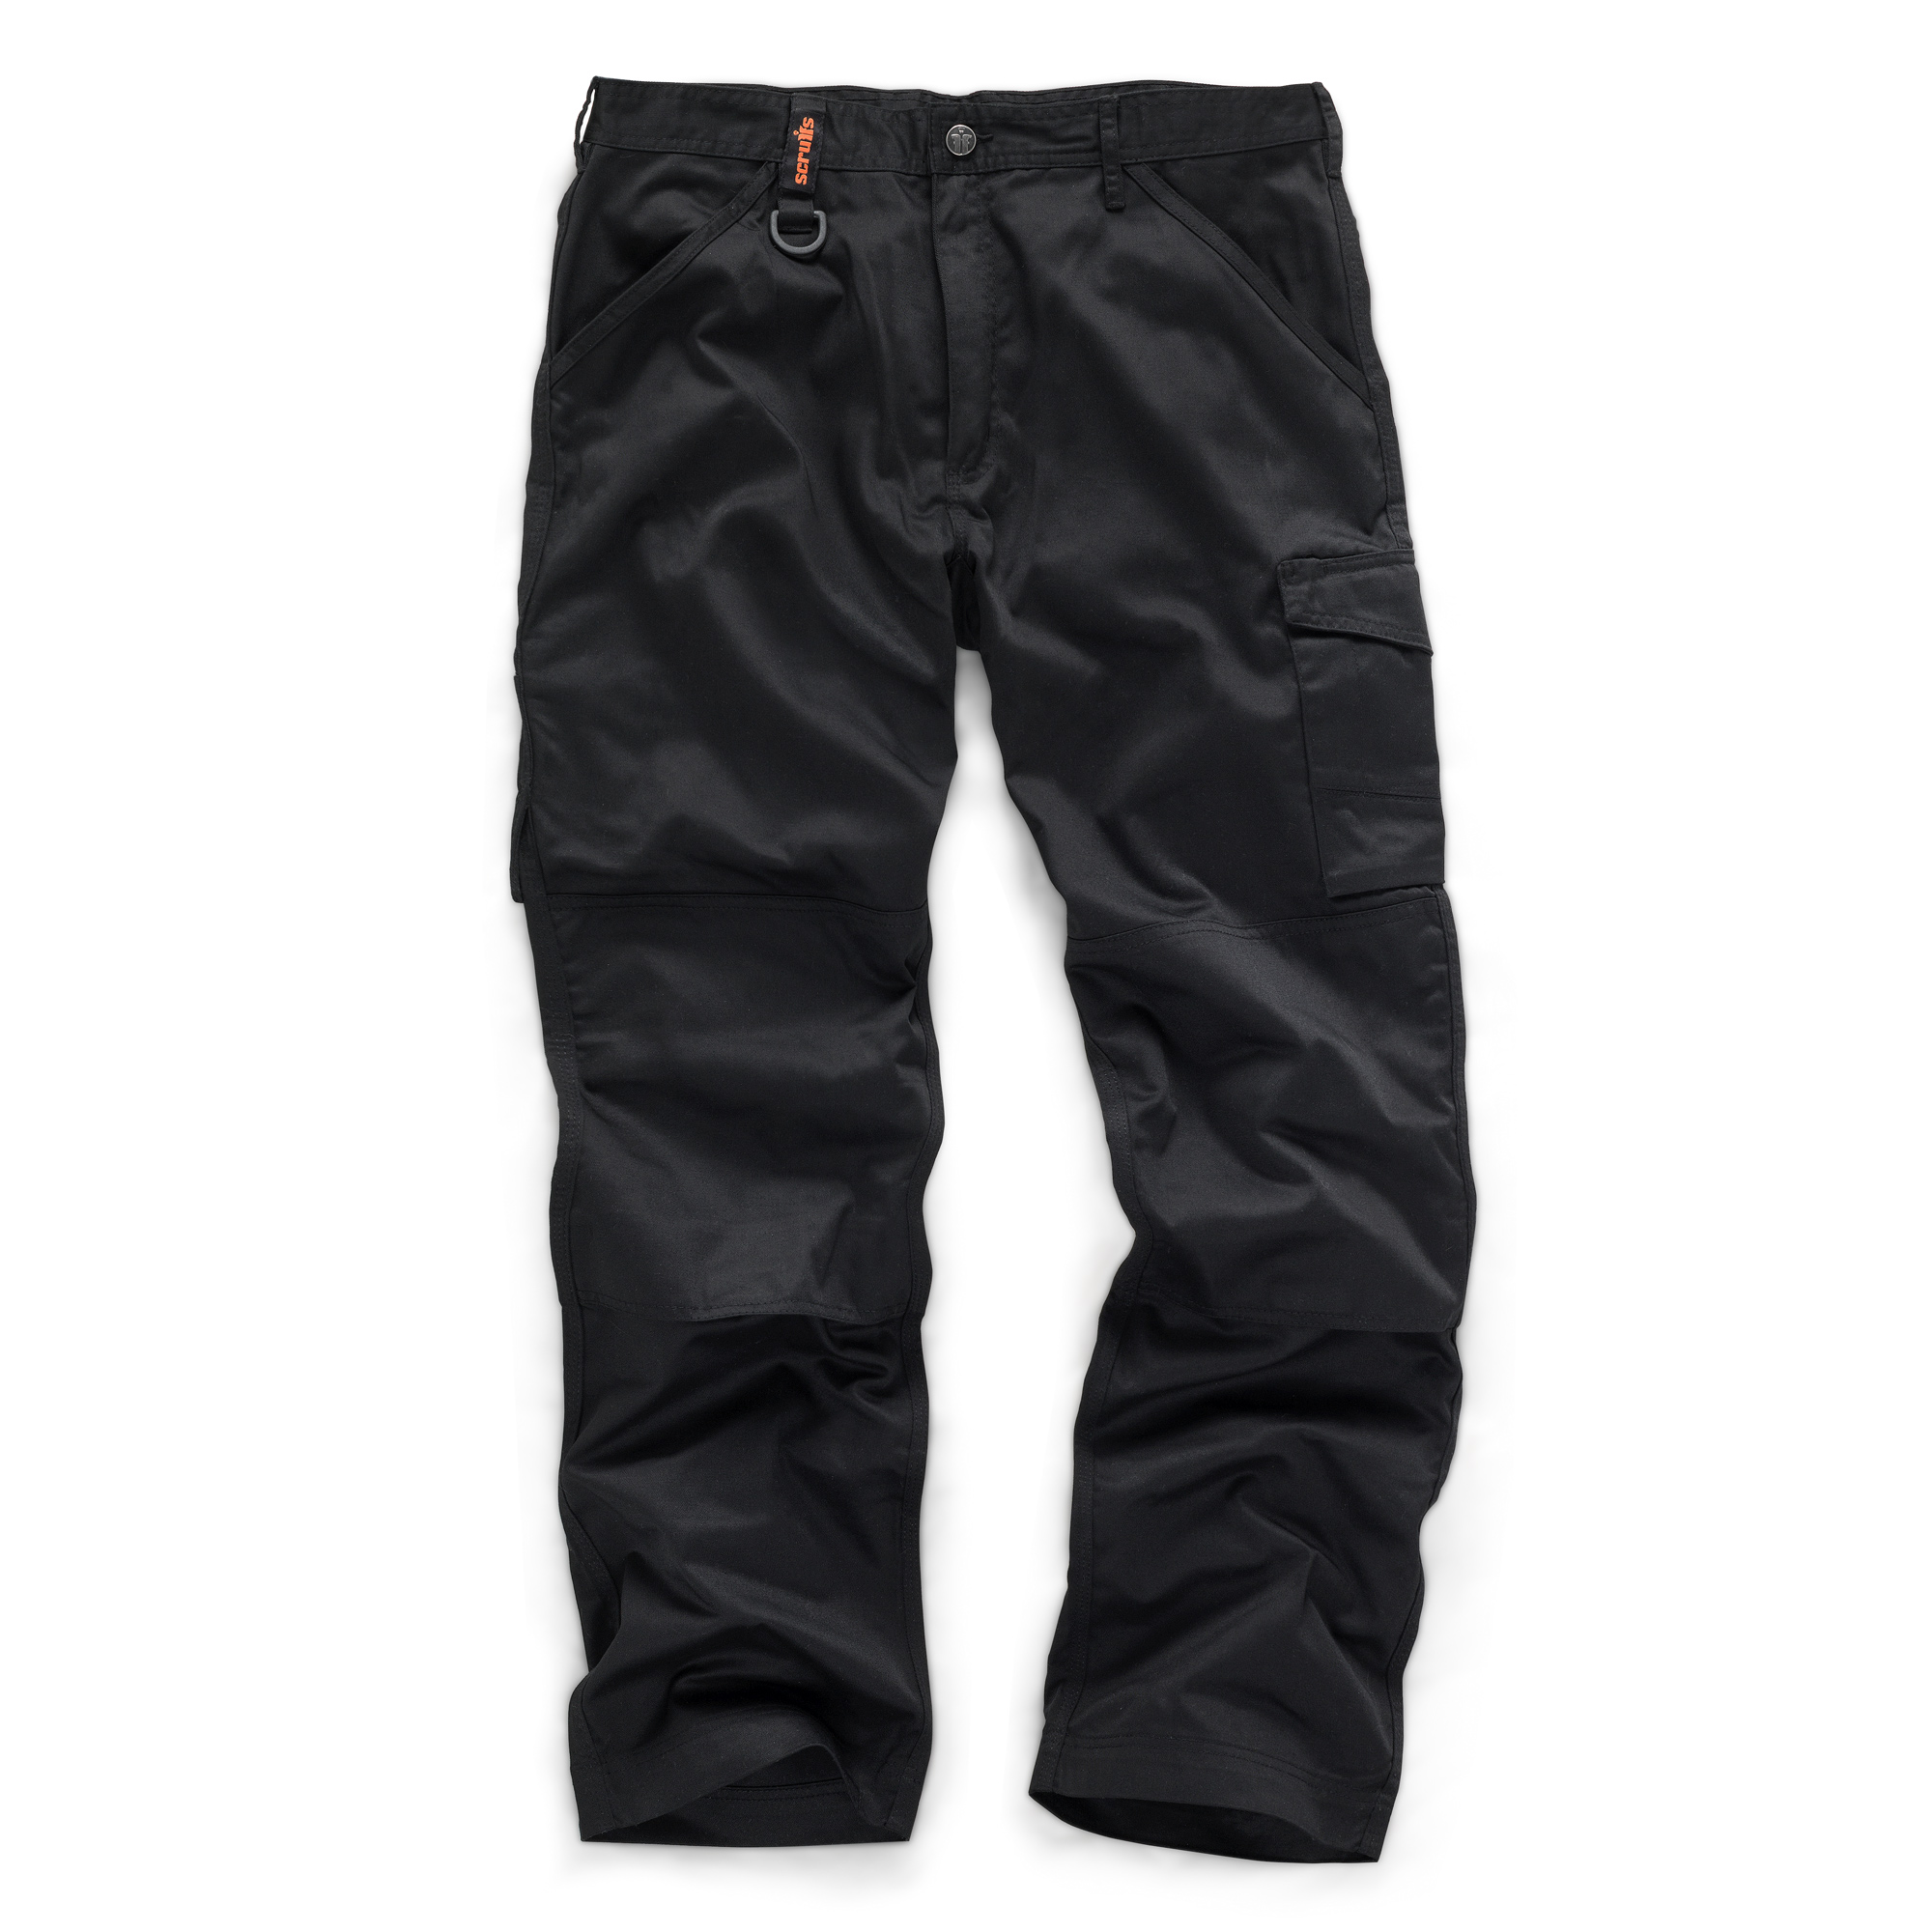 Scruffs Worker Trouser in Black